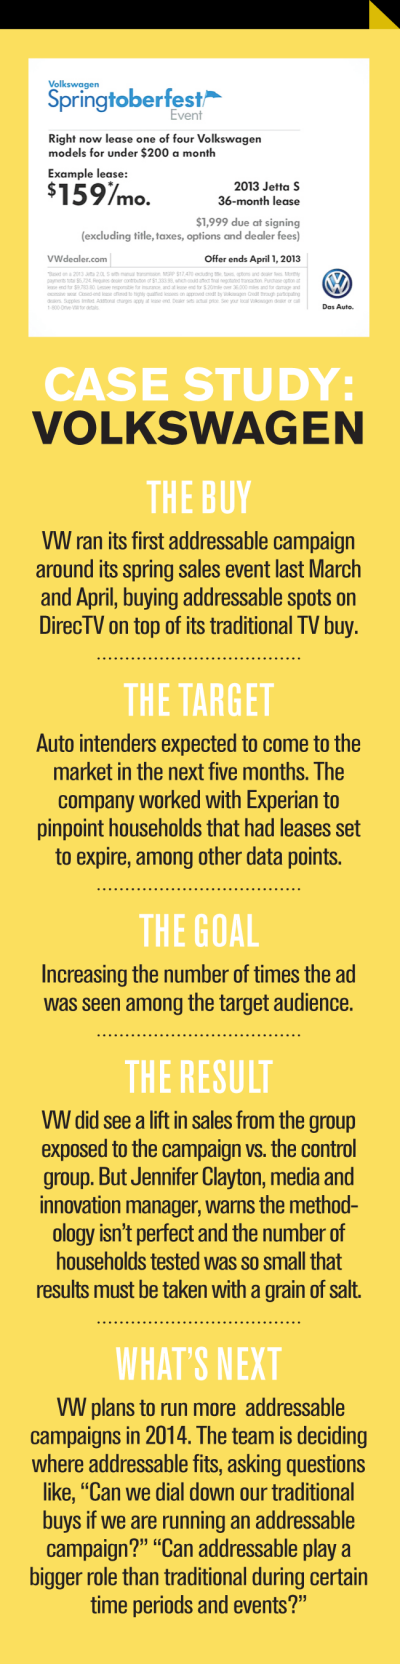 The CMO's Guide to Addressable TV Advertising